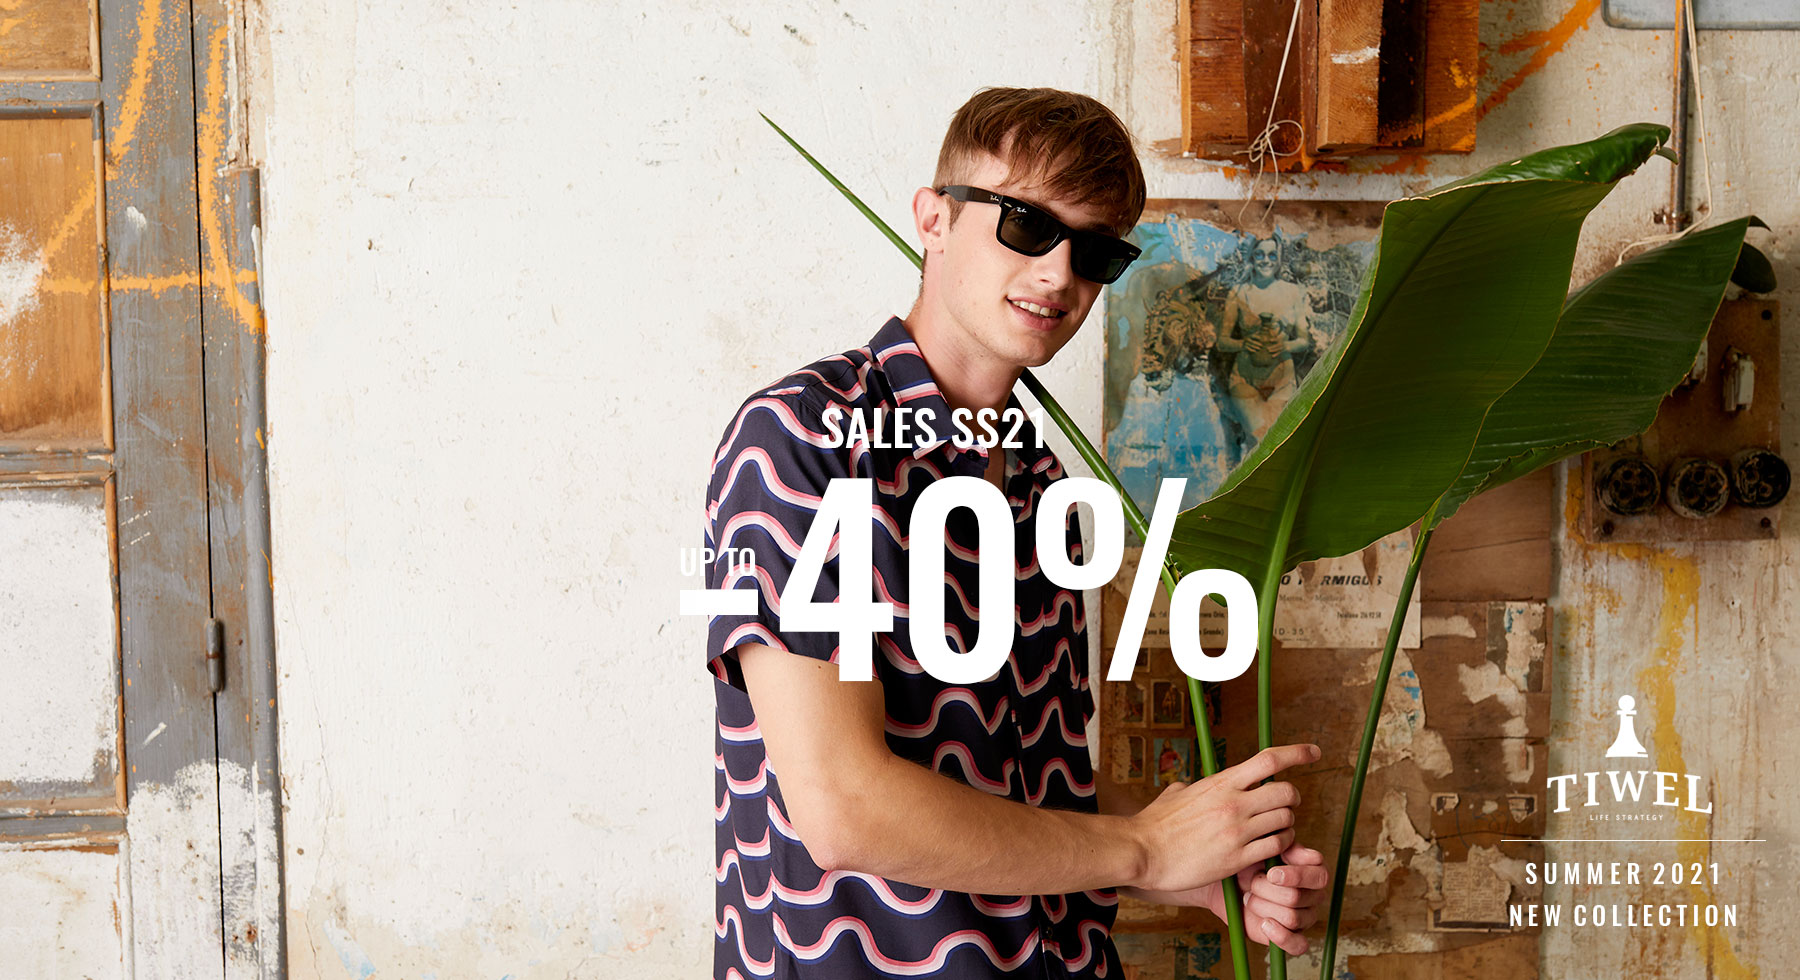 sales-ss21-up-to-40